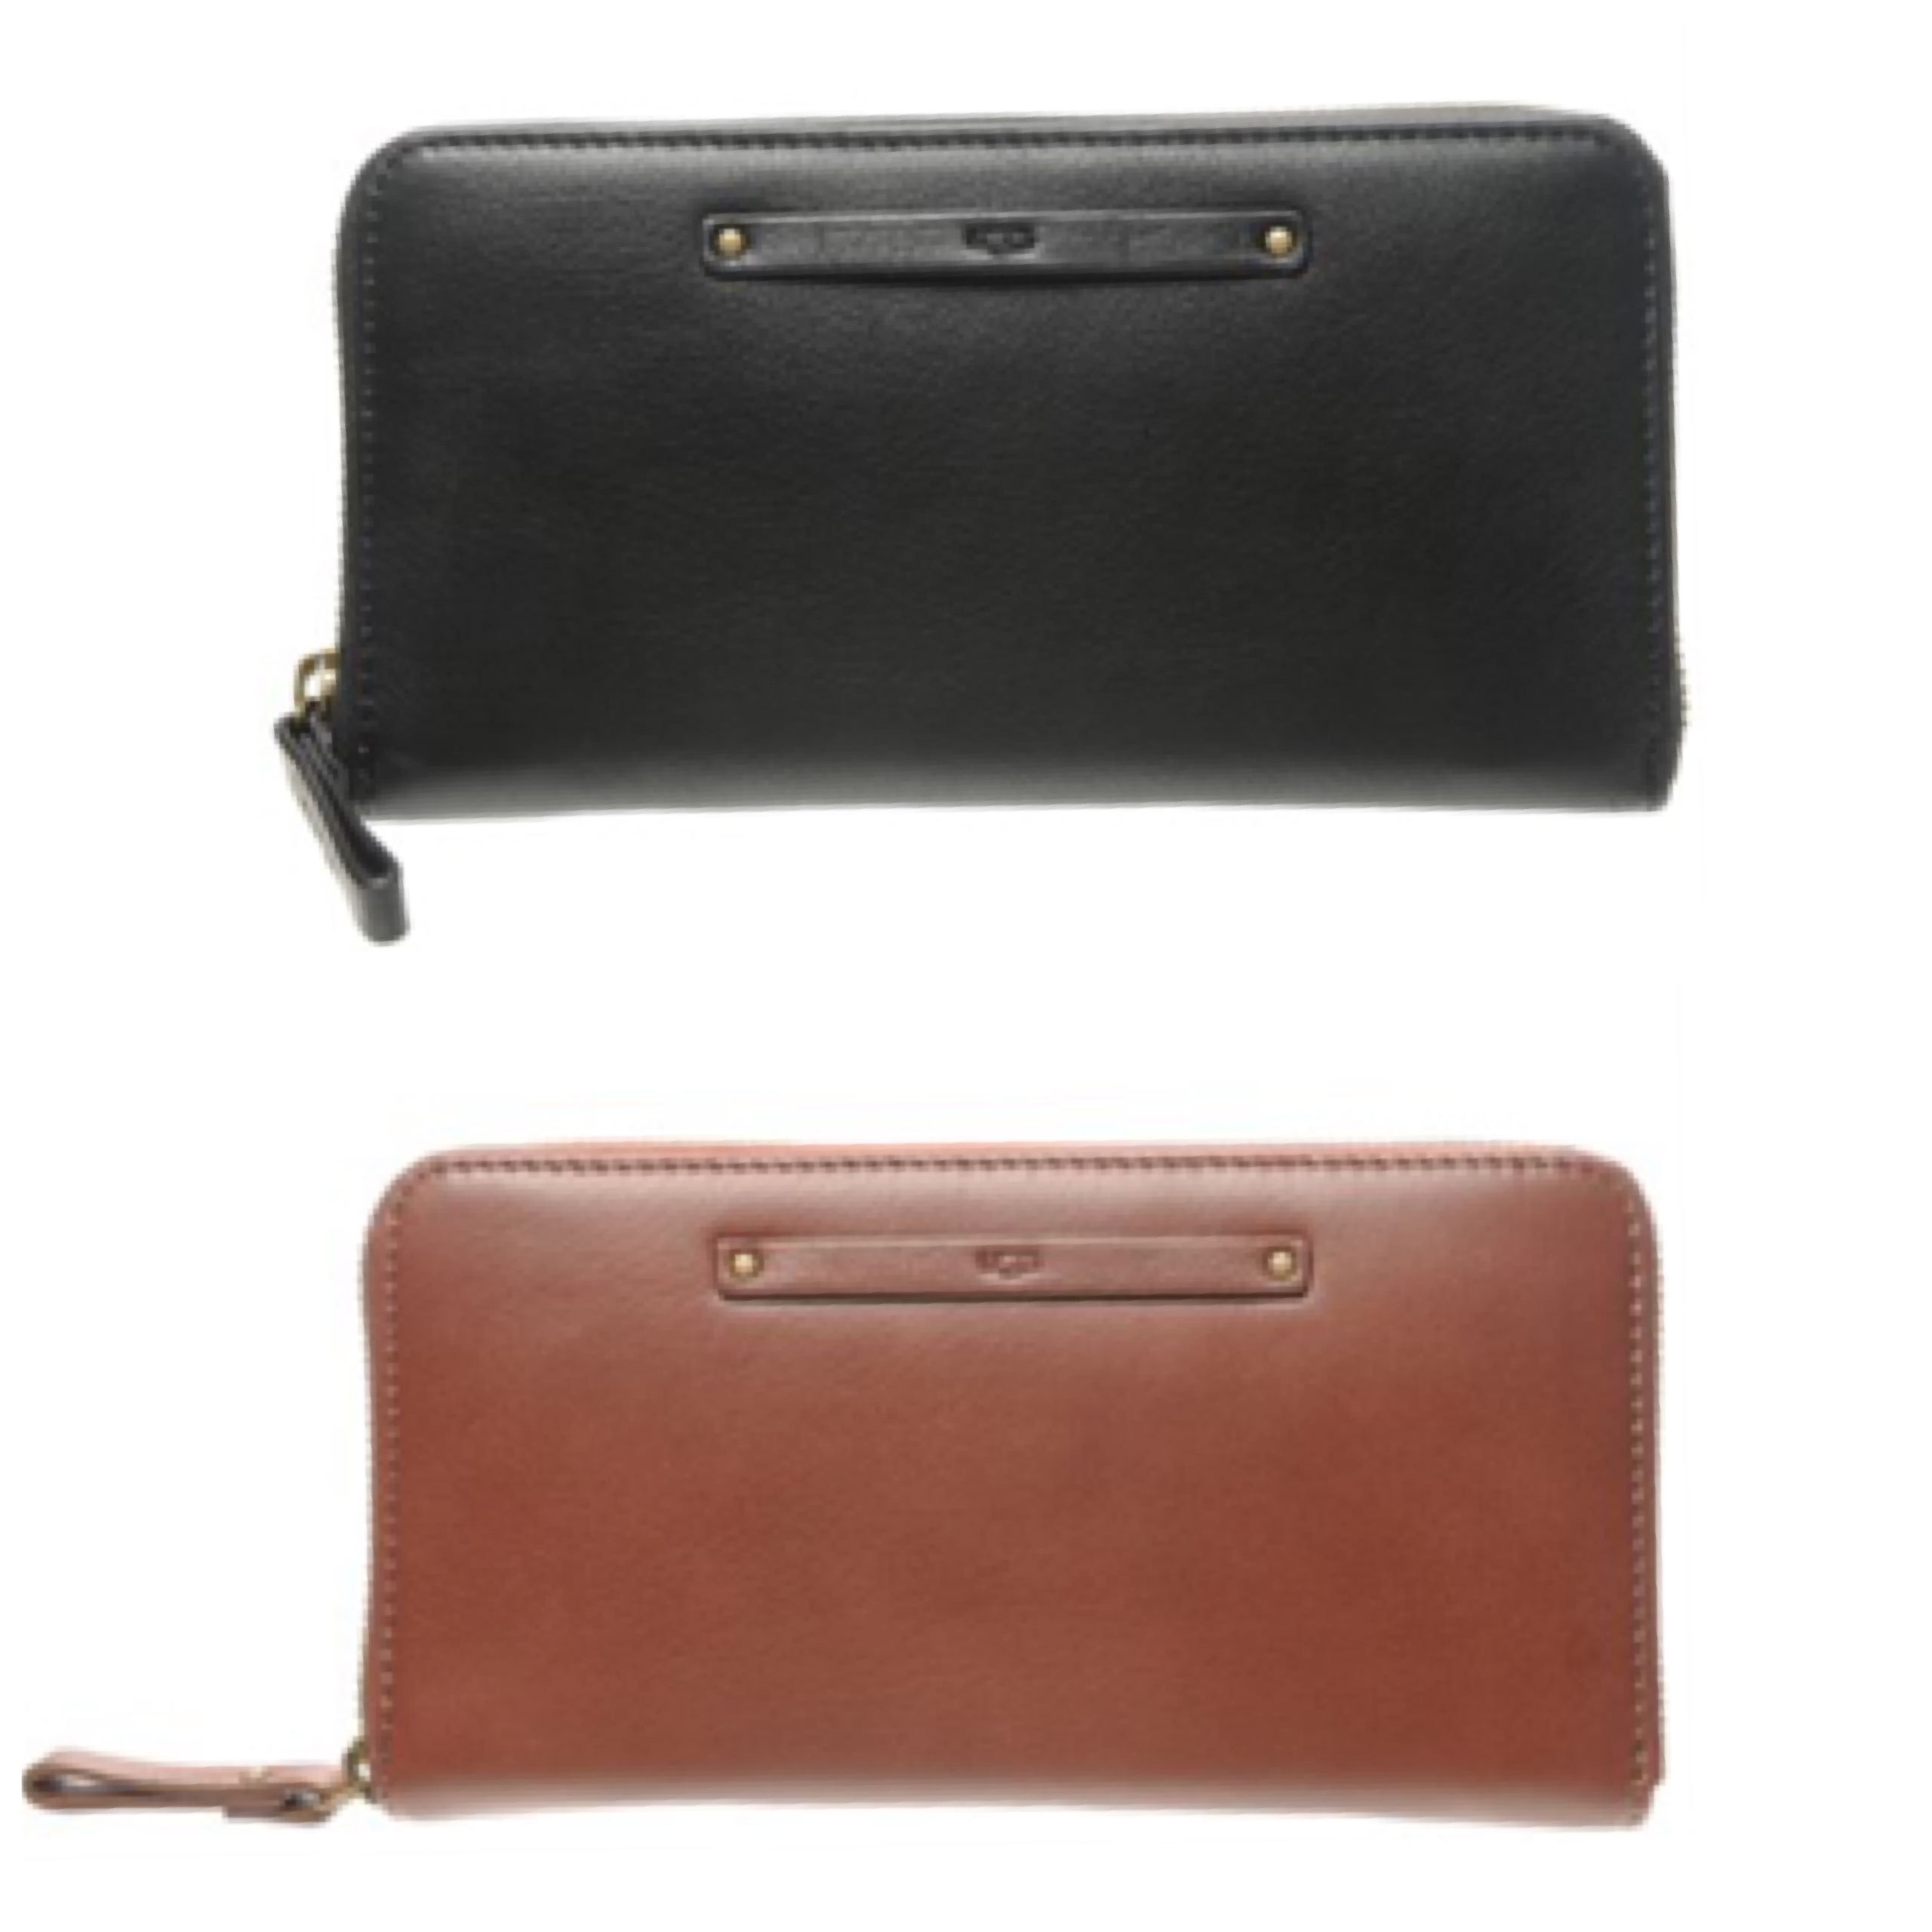 今だけこの価格!☆UGG☆Jenna Zip Around Wallet 2 Colors